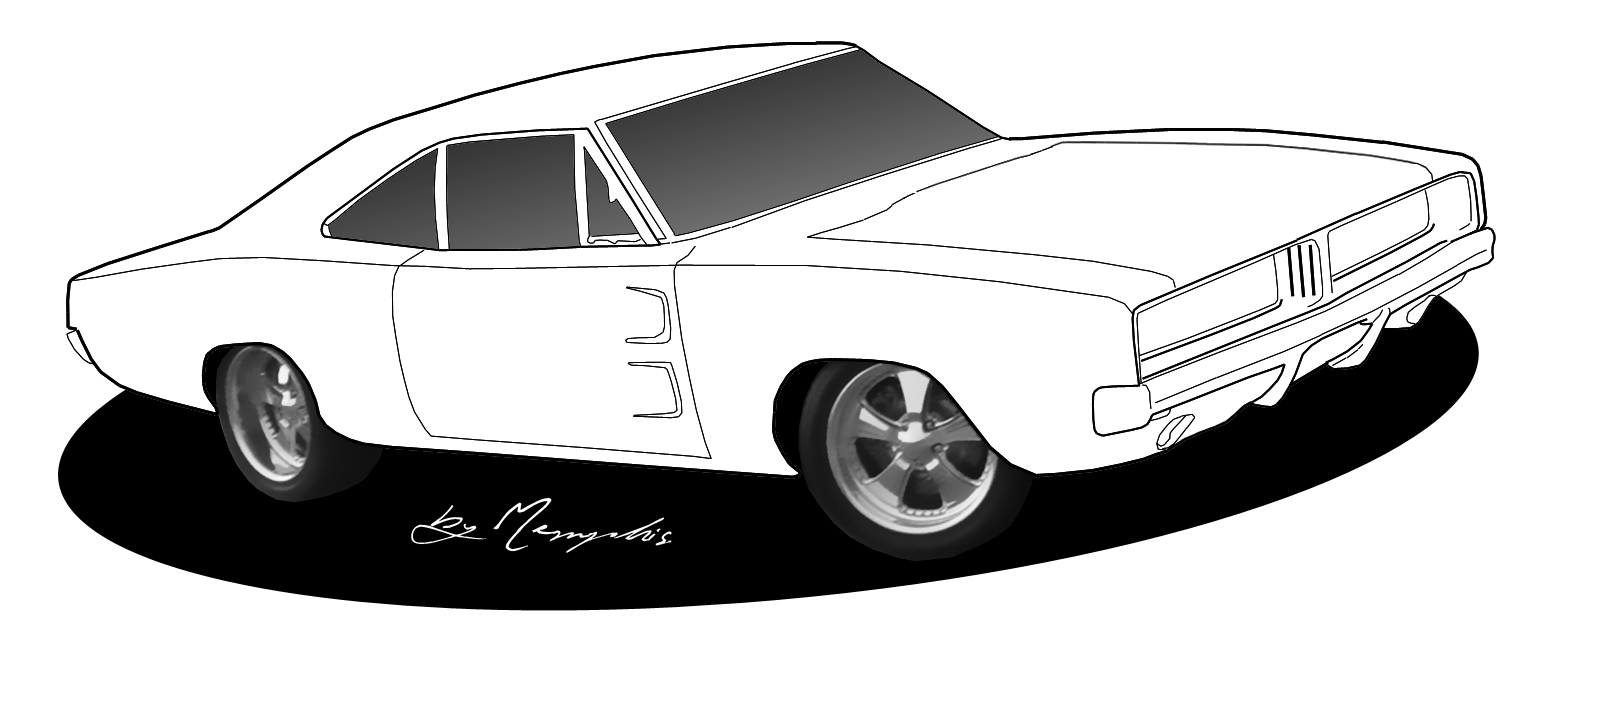 Cool Drawings Old Cars